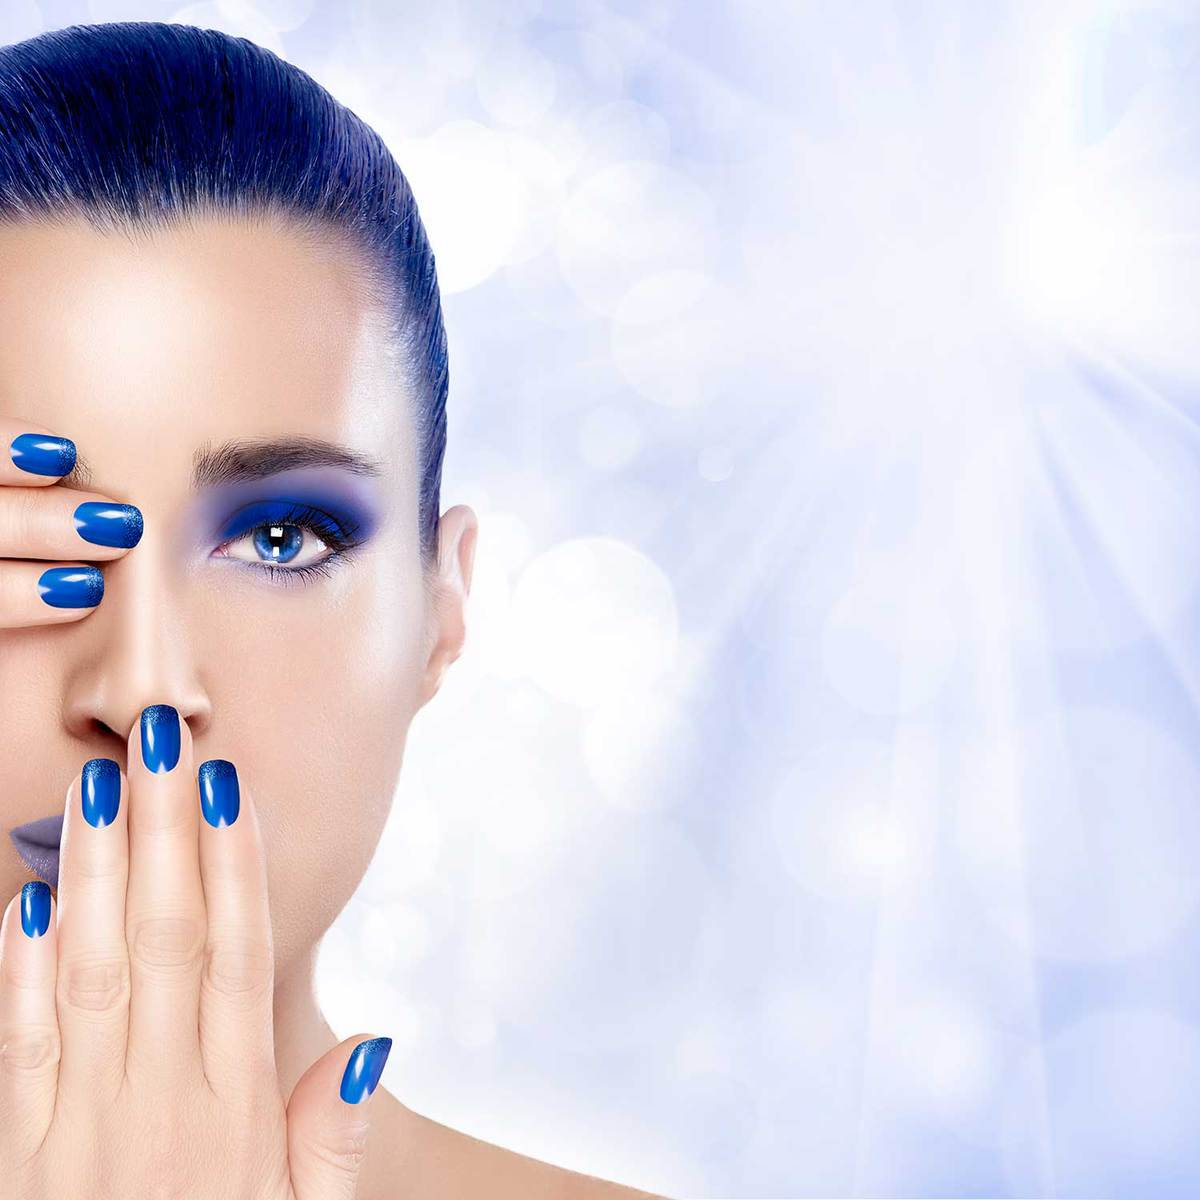 Beautiful young woman with blue hair, nails and makeup with hands on her face covering one eye and mouth